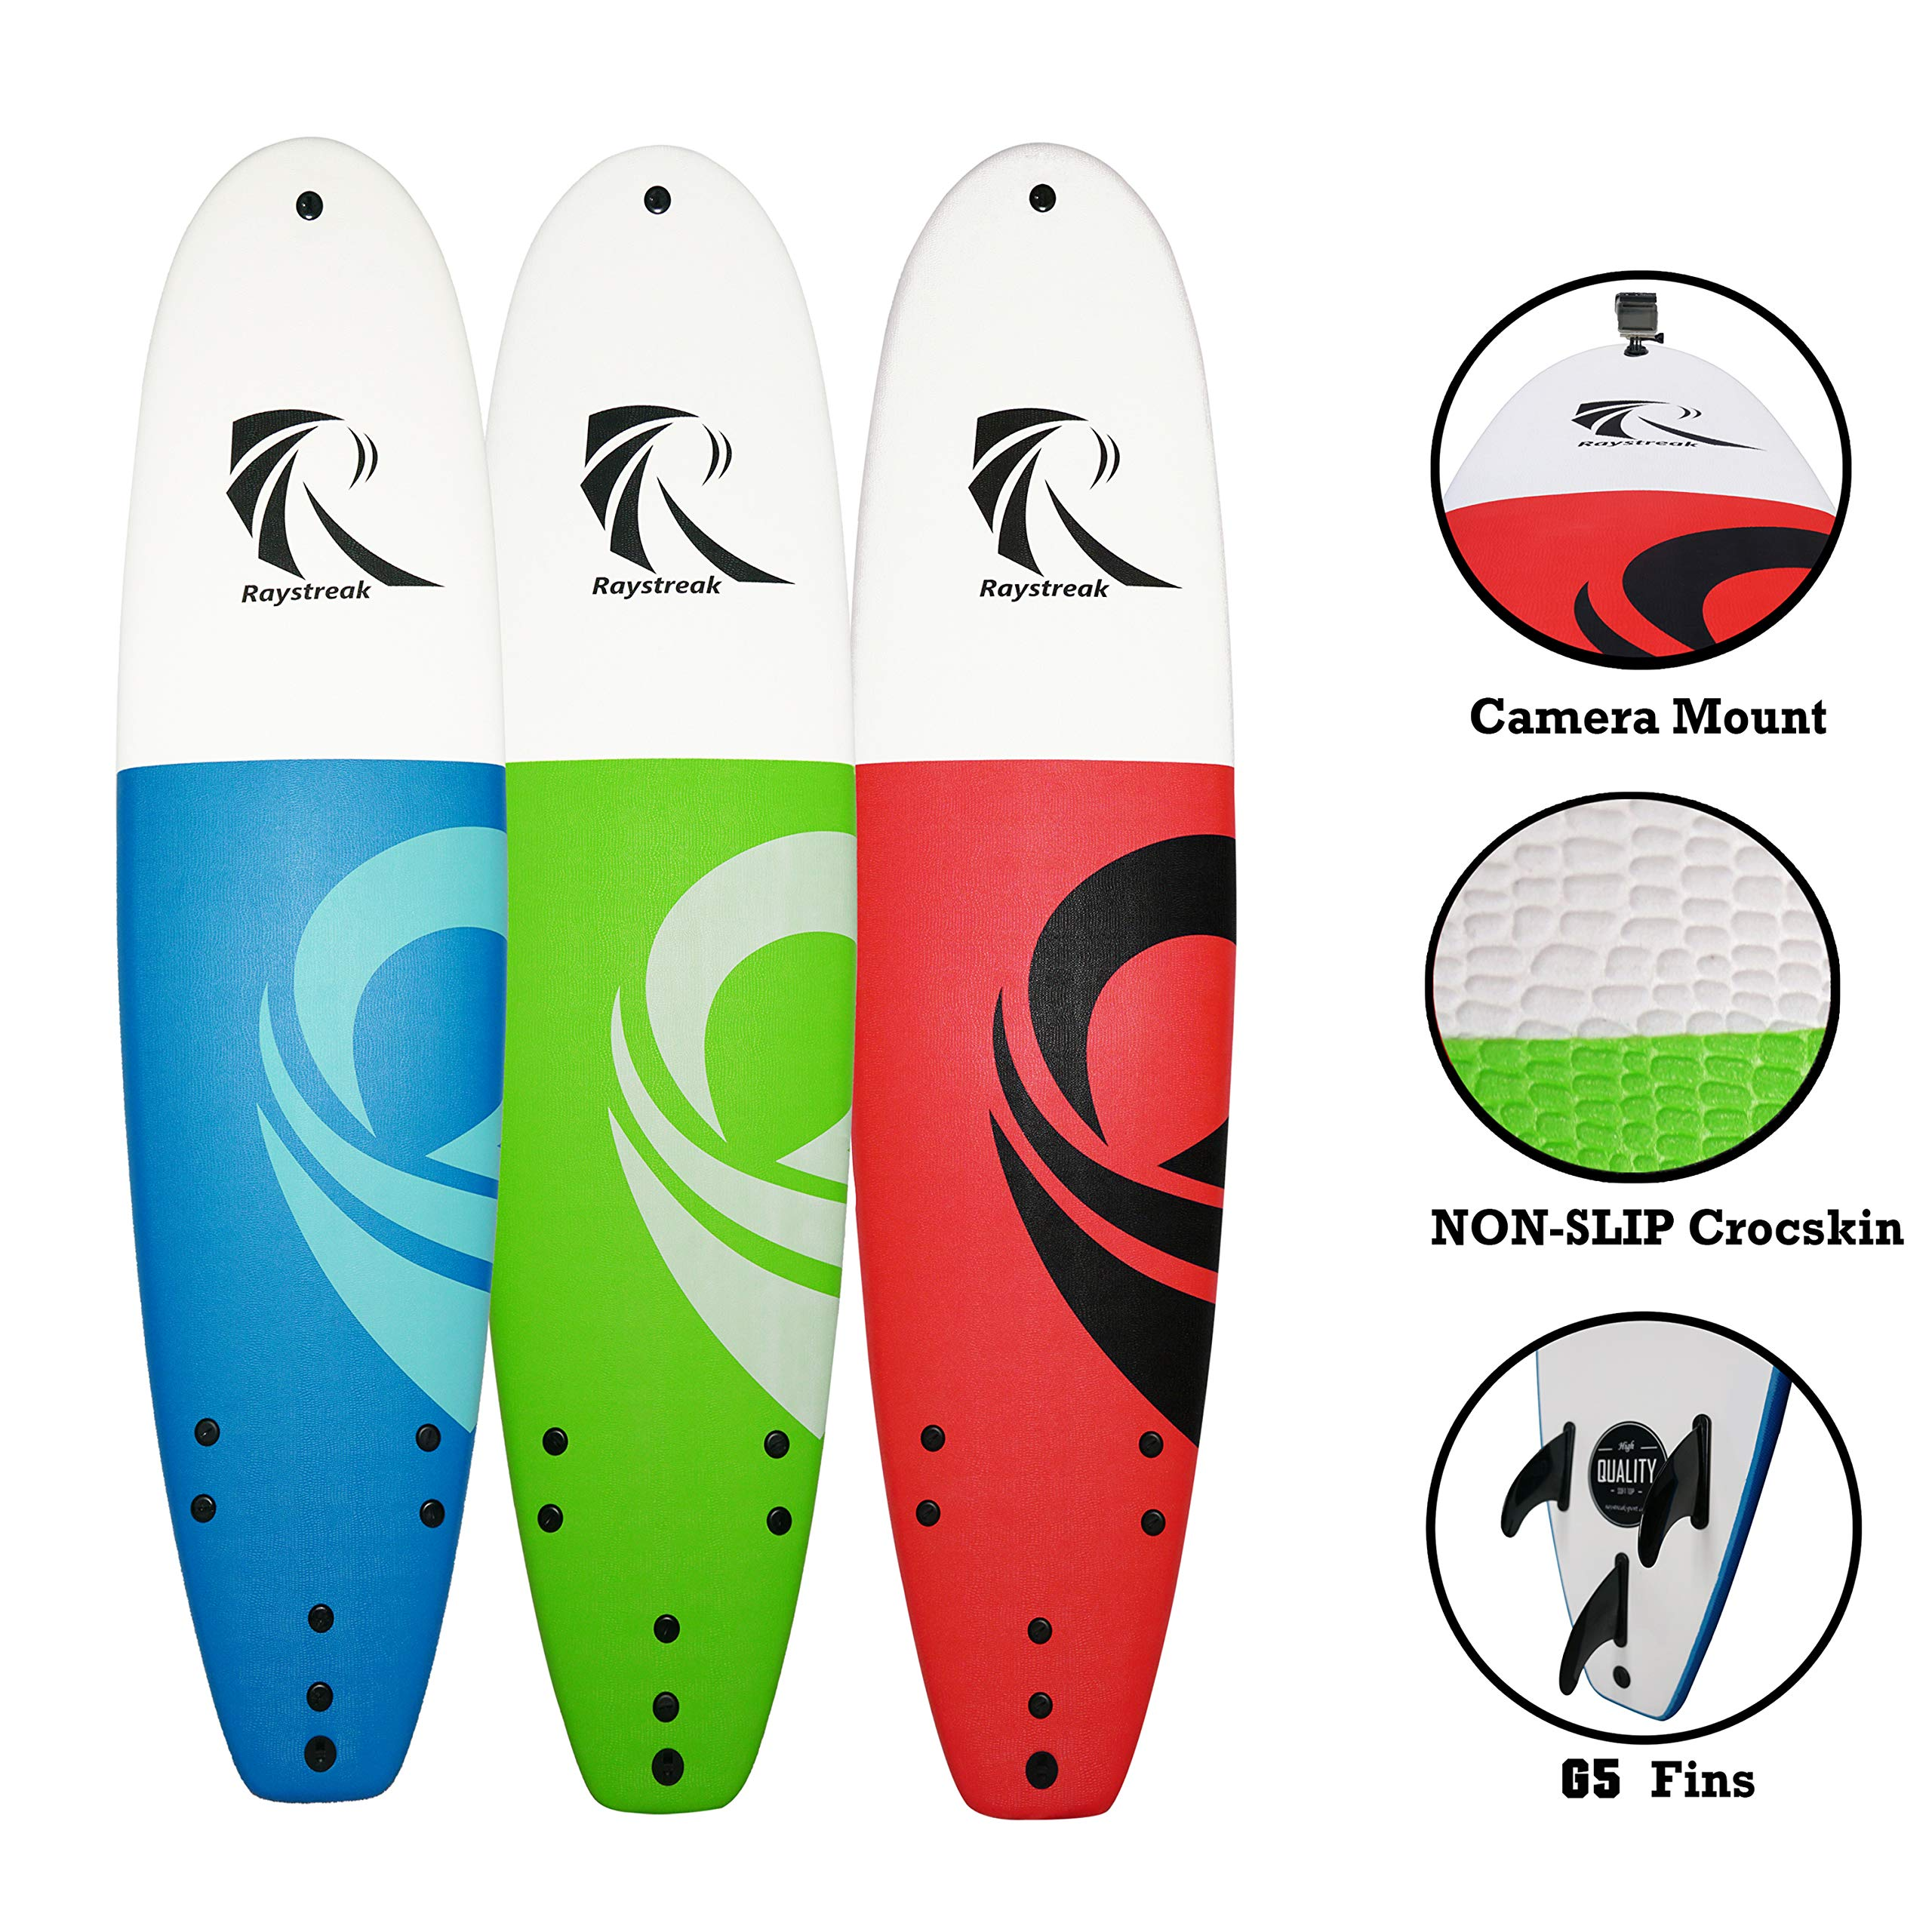 RAYSTREAK 8'2 Soft top Surfboard | 8ft 2 inches Soft Surf Board Longboard | Crocskin Non-Slip Deck Foam Surfboard| Performance Softboard Package with fin and Leash (Red by RAYSTREAK